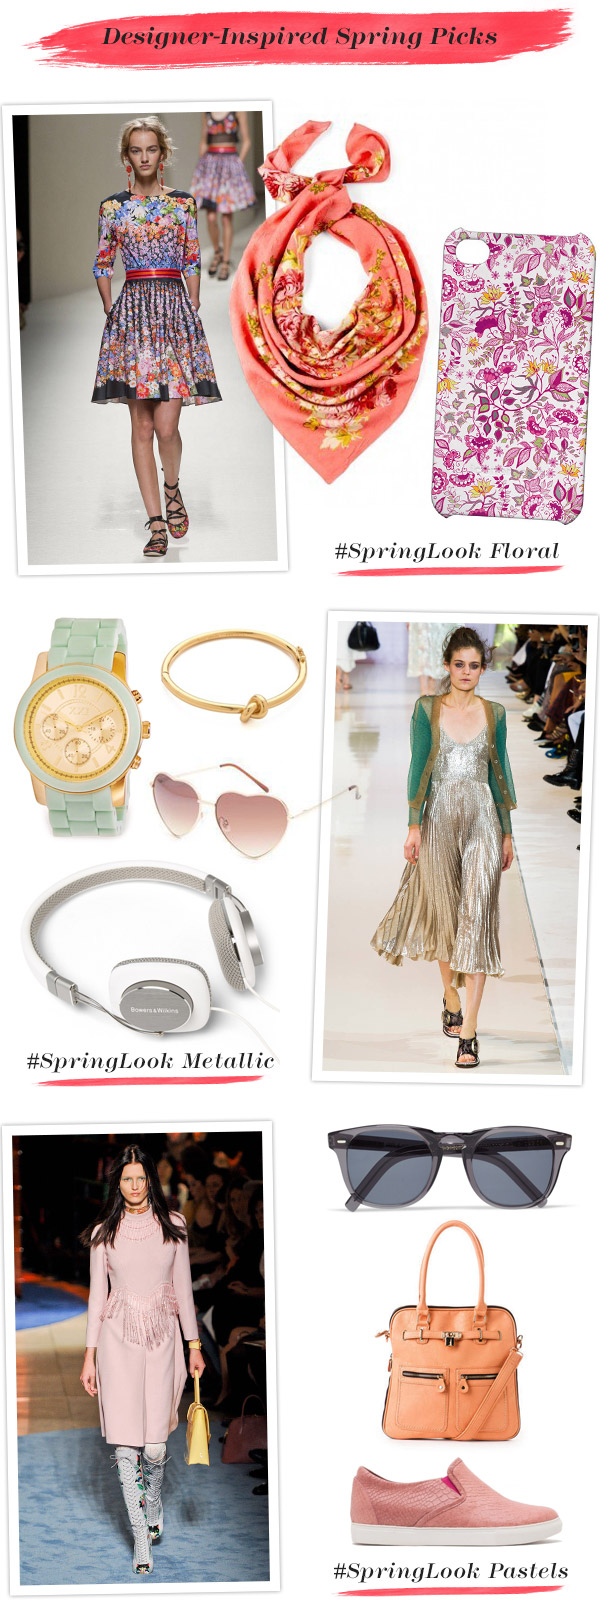 springfashion-trends